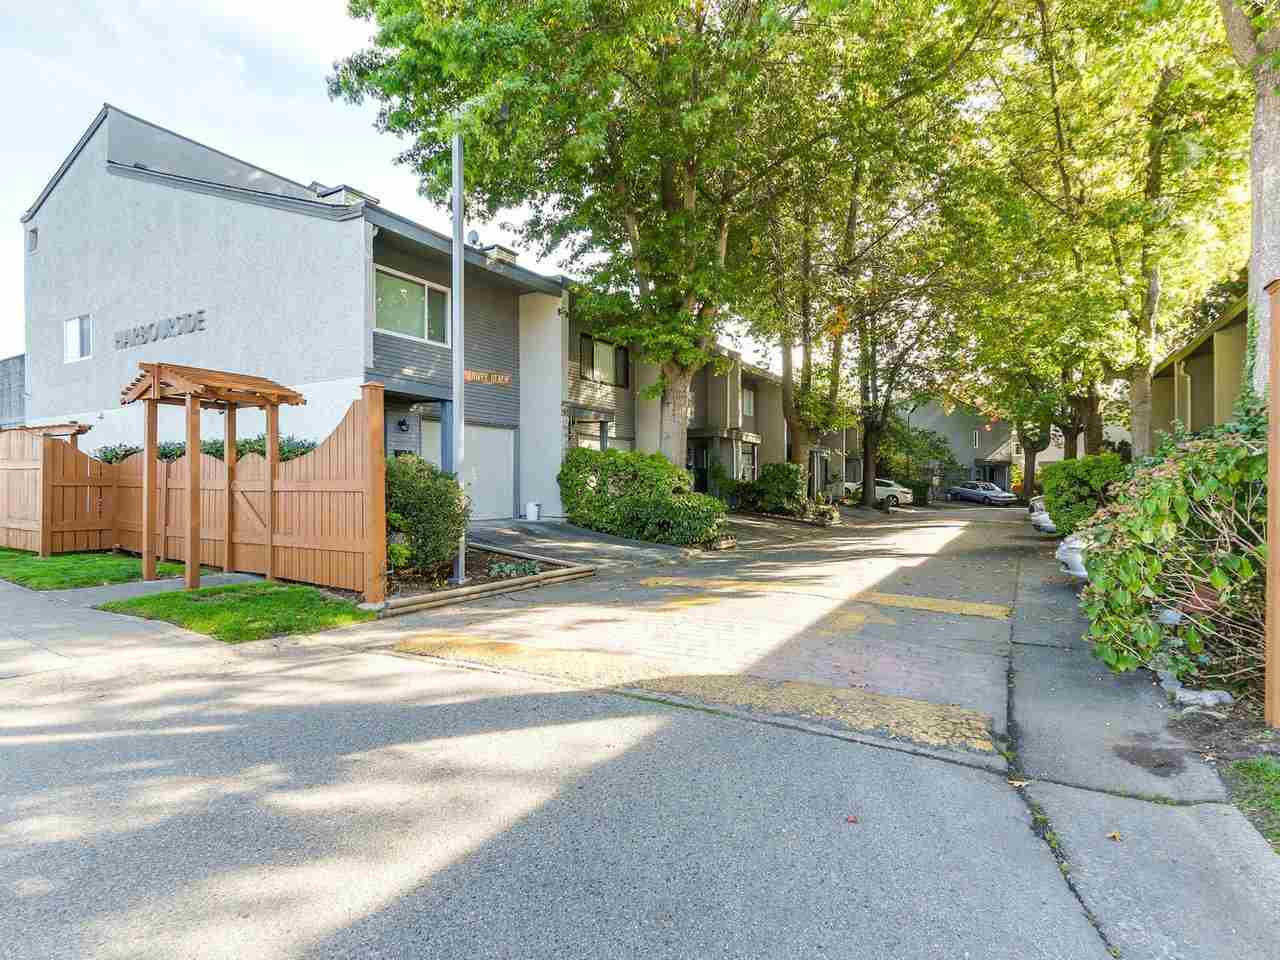 Welcome home to this spacious townhome in Harbour Side. This 3 level end unit features 3 bedrooms + den, 2 bathrooms and over 1,500 square feet of living space. Main floor features a nice kitchen, living room, dining room and master bedroom. Additional 2 bedrooms up. Lower level features a large family room and 3 piece bathroom. Central location with easy access to shopping, transit, recreation & schools. Call for more information!